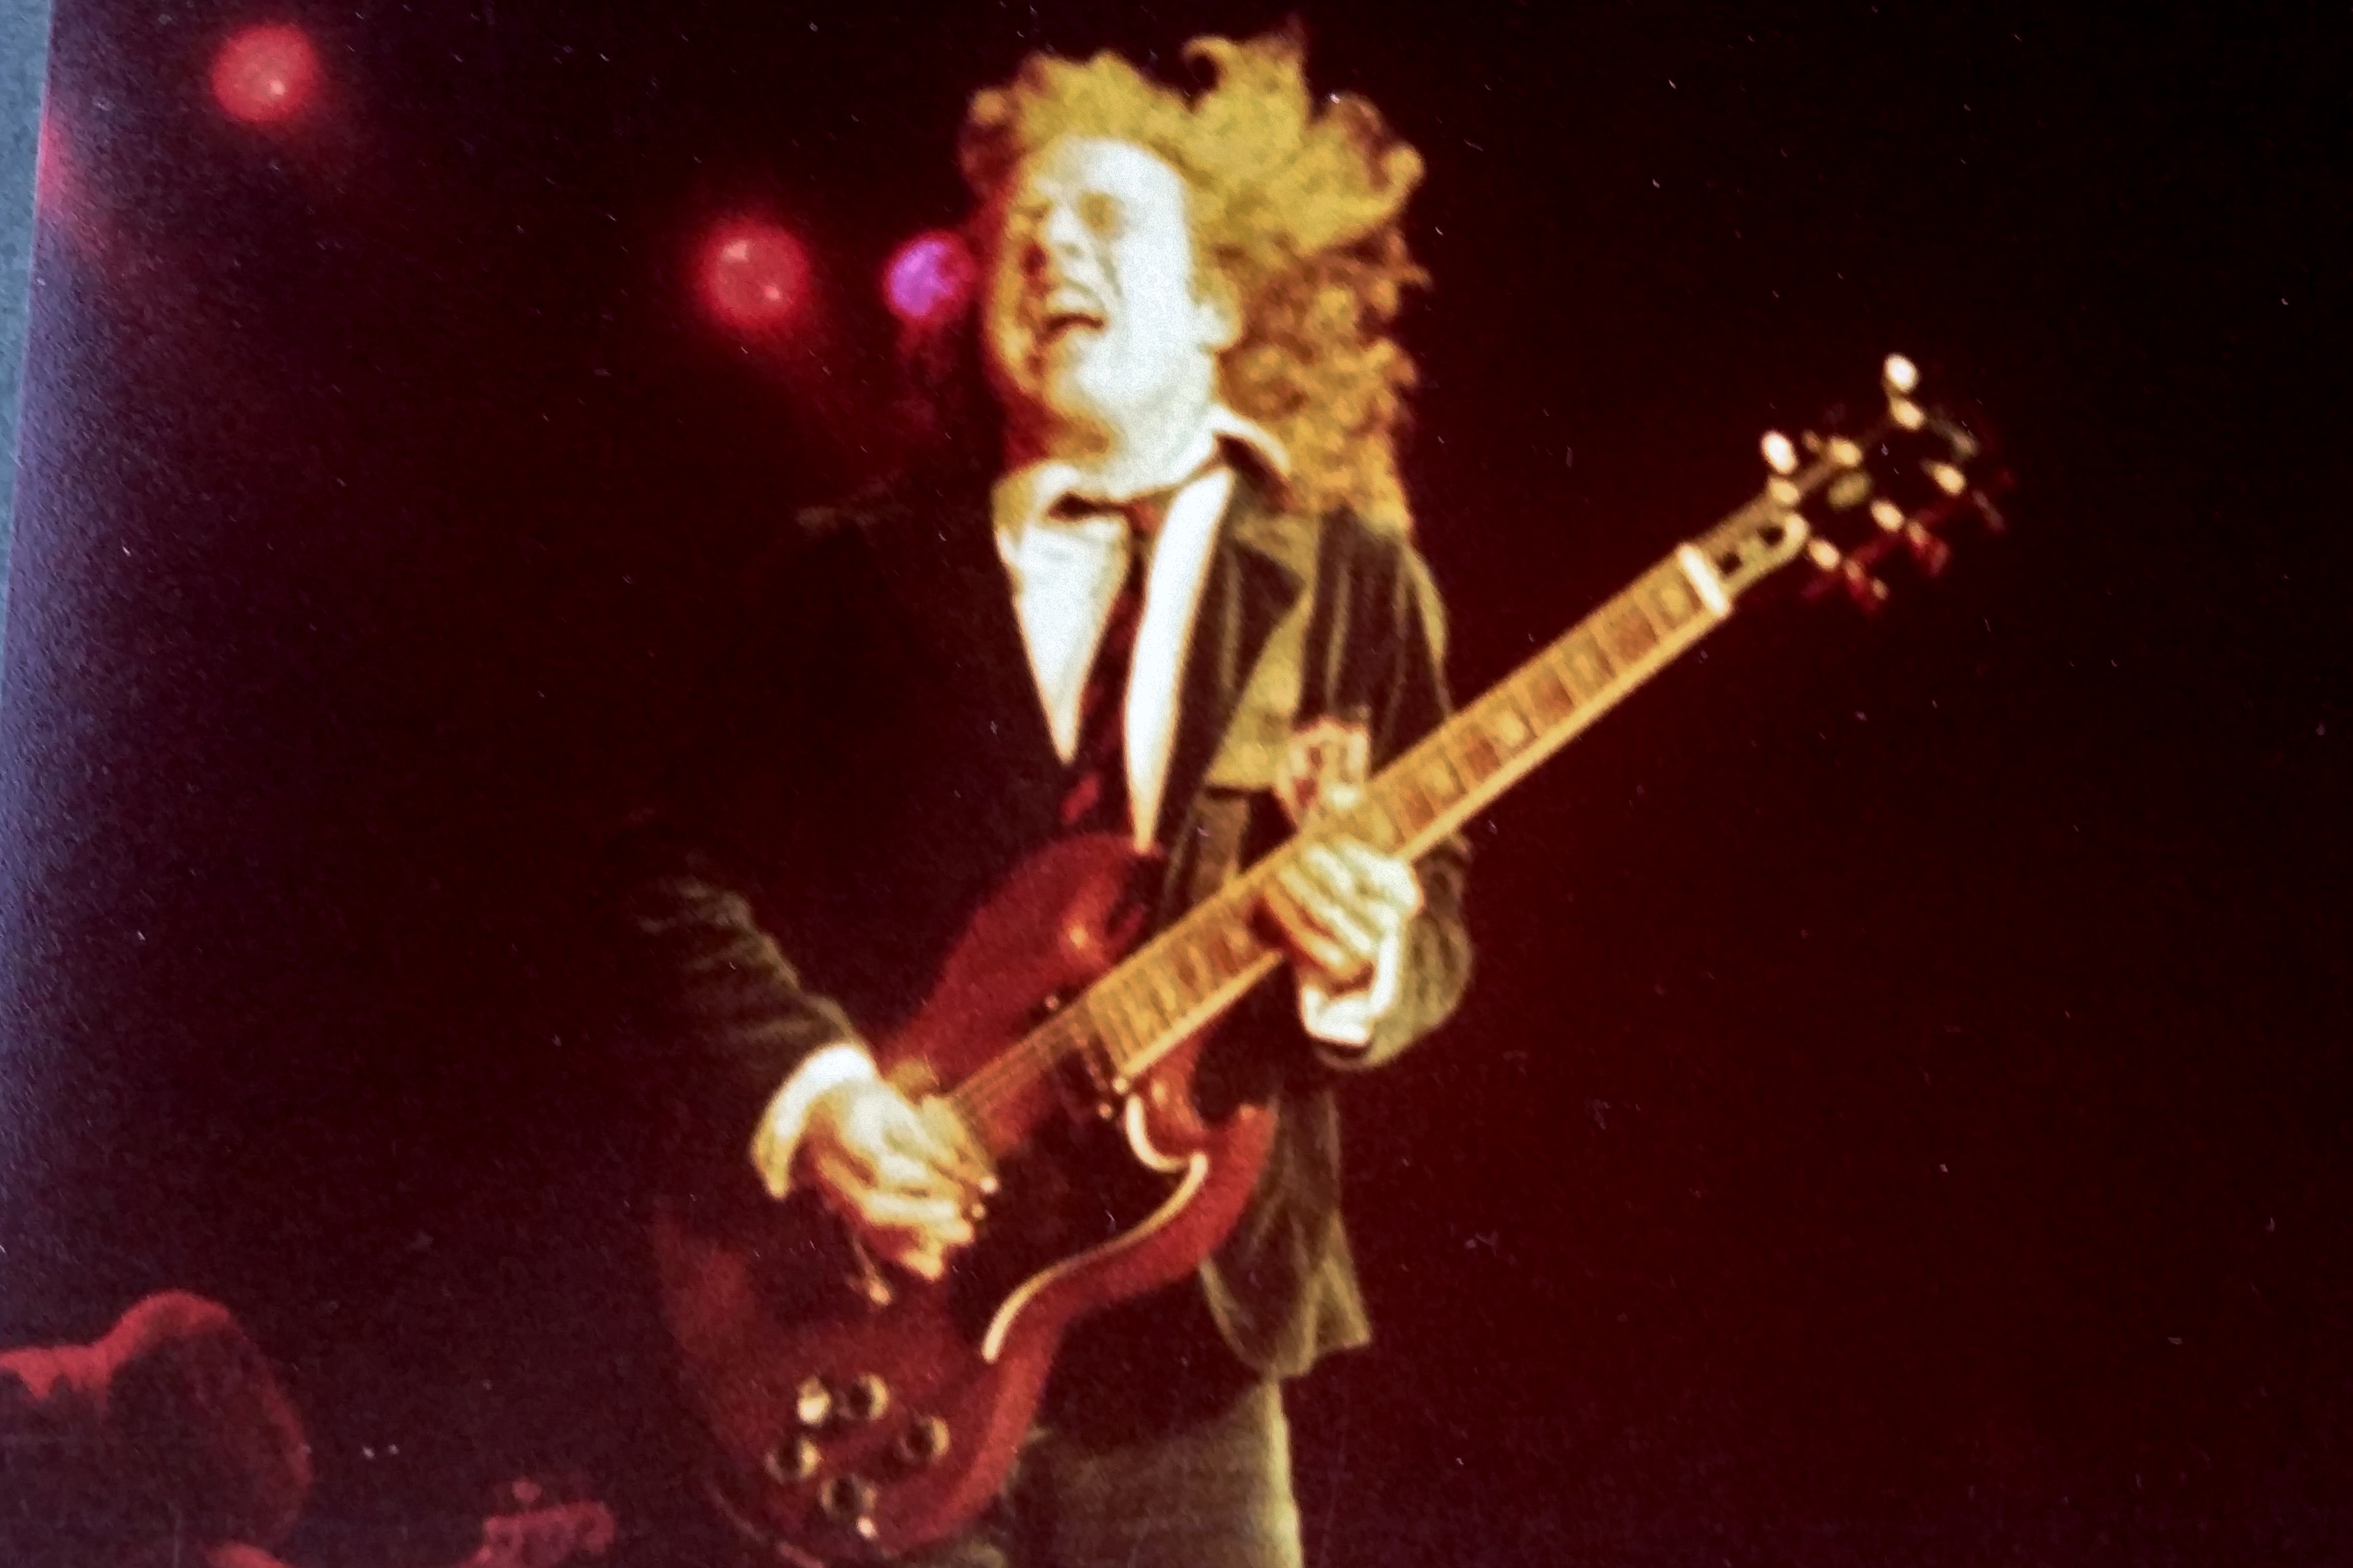 Acdc For Those About To Rock Live Tour Video